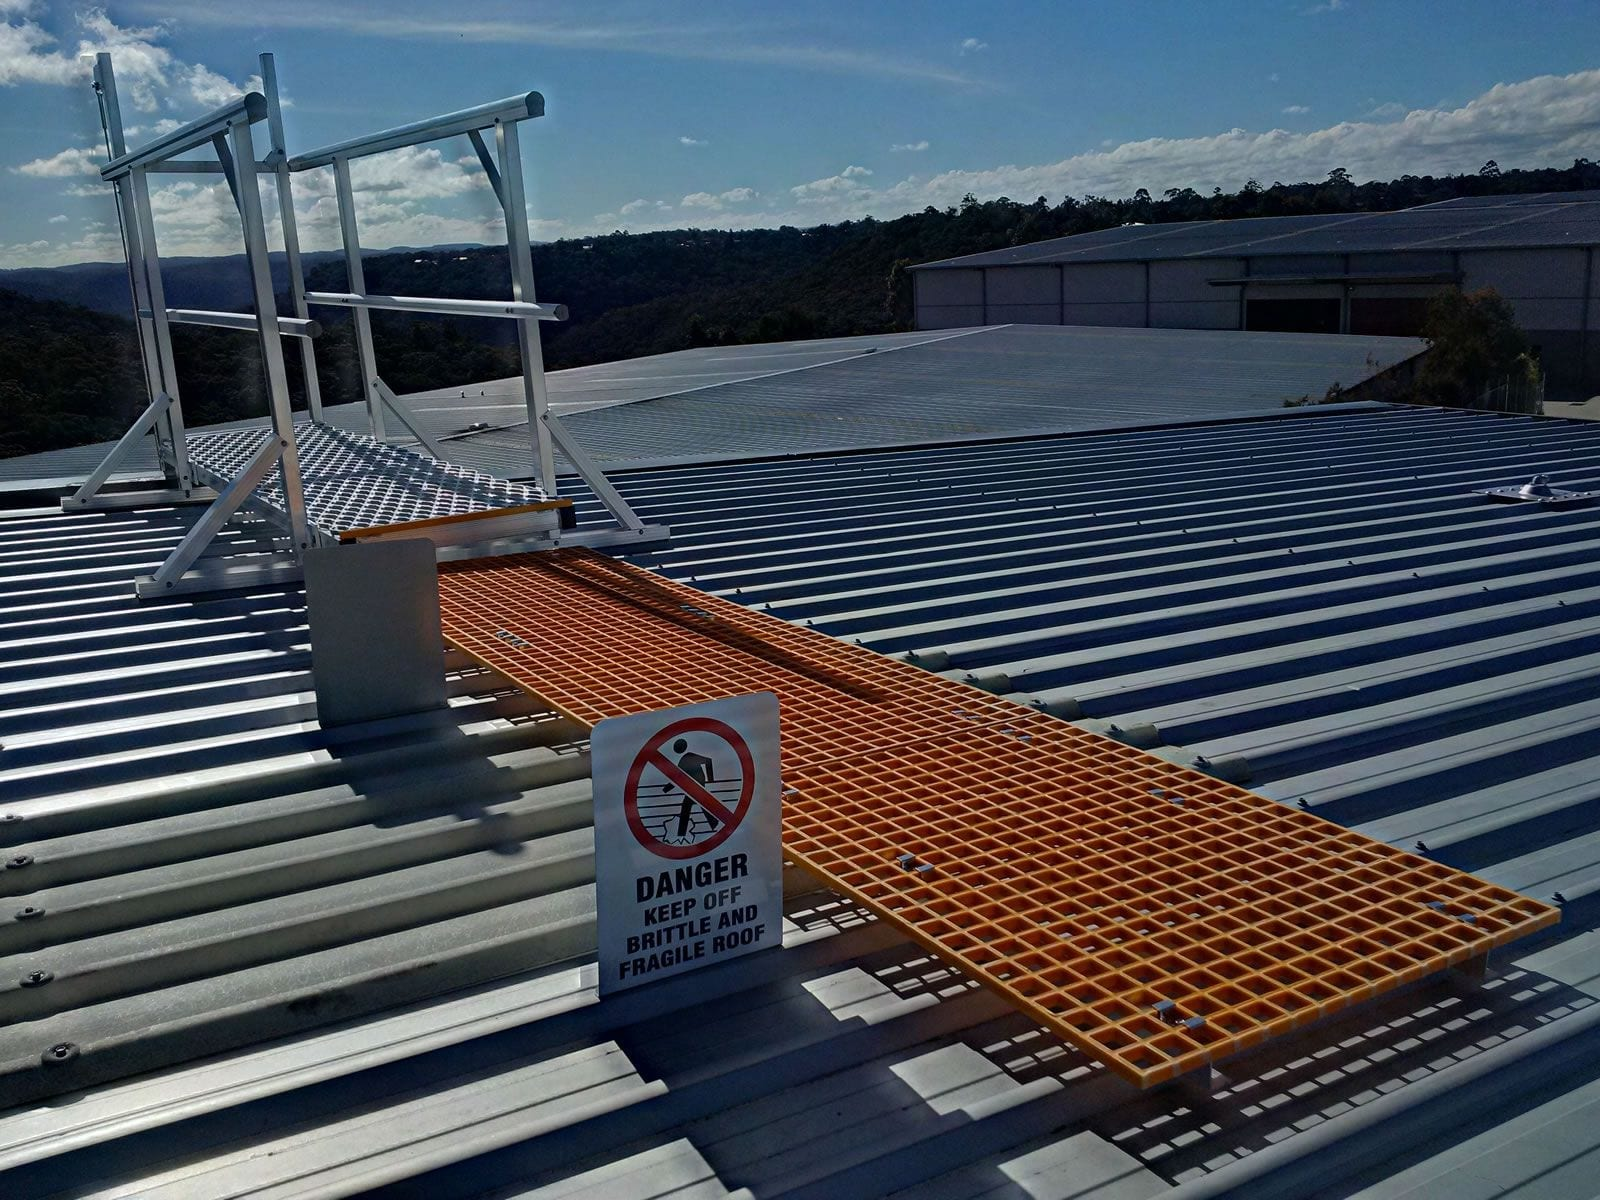 Rooftop walkway with safety sign